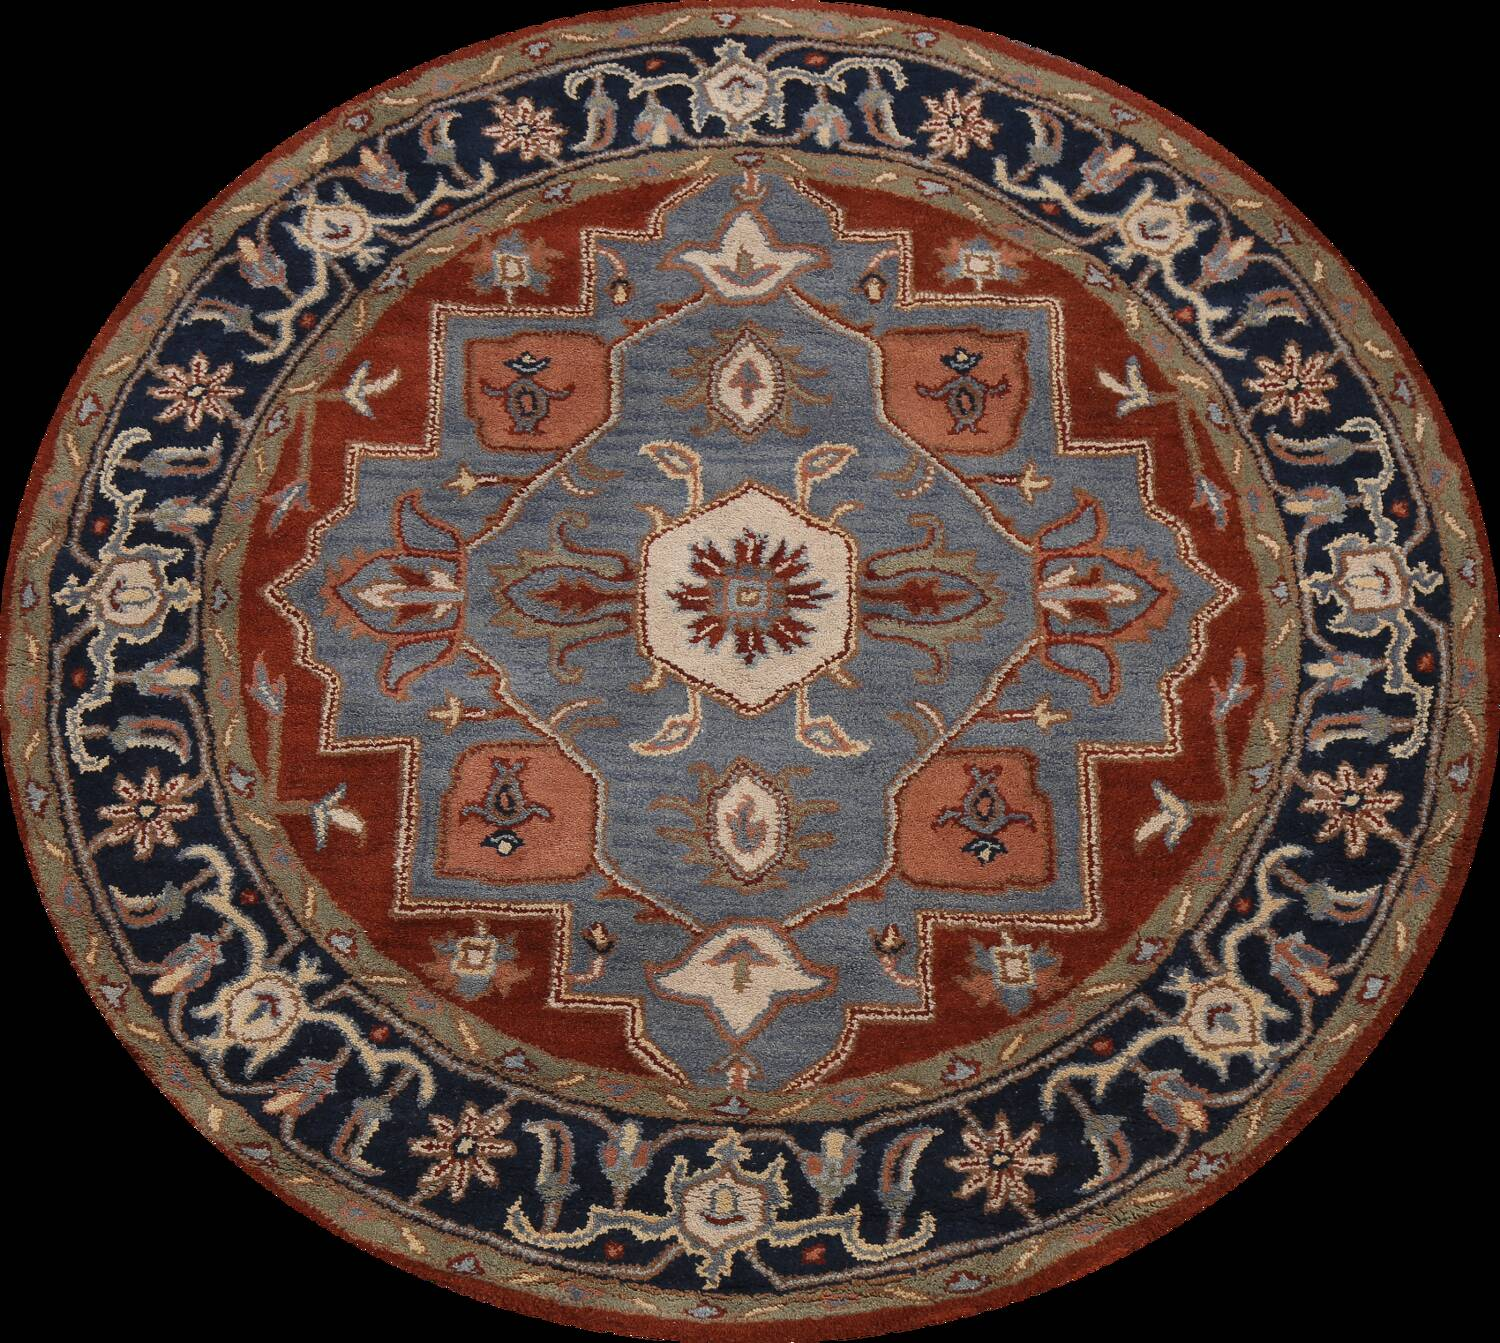 Floral Round Rug 6x6 image 1